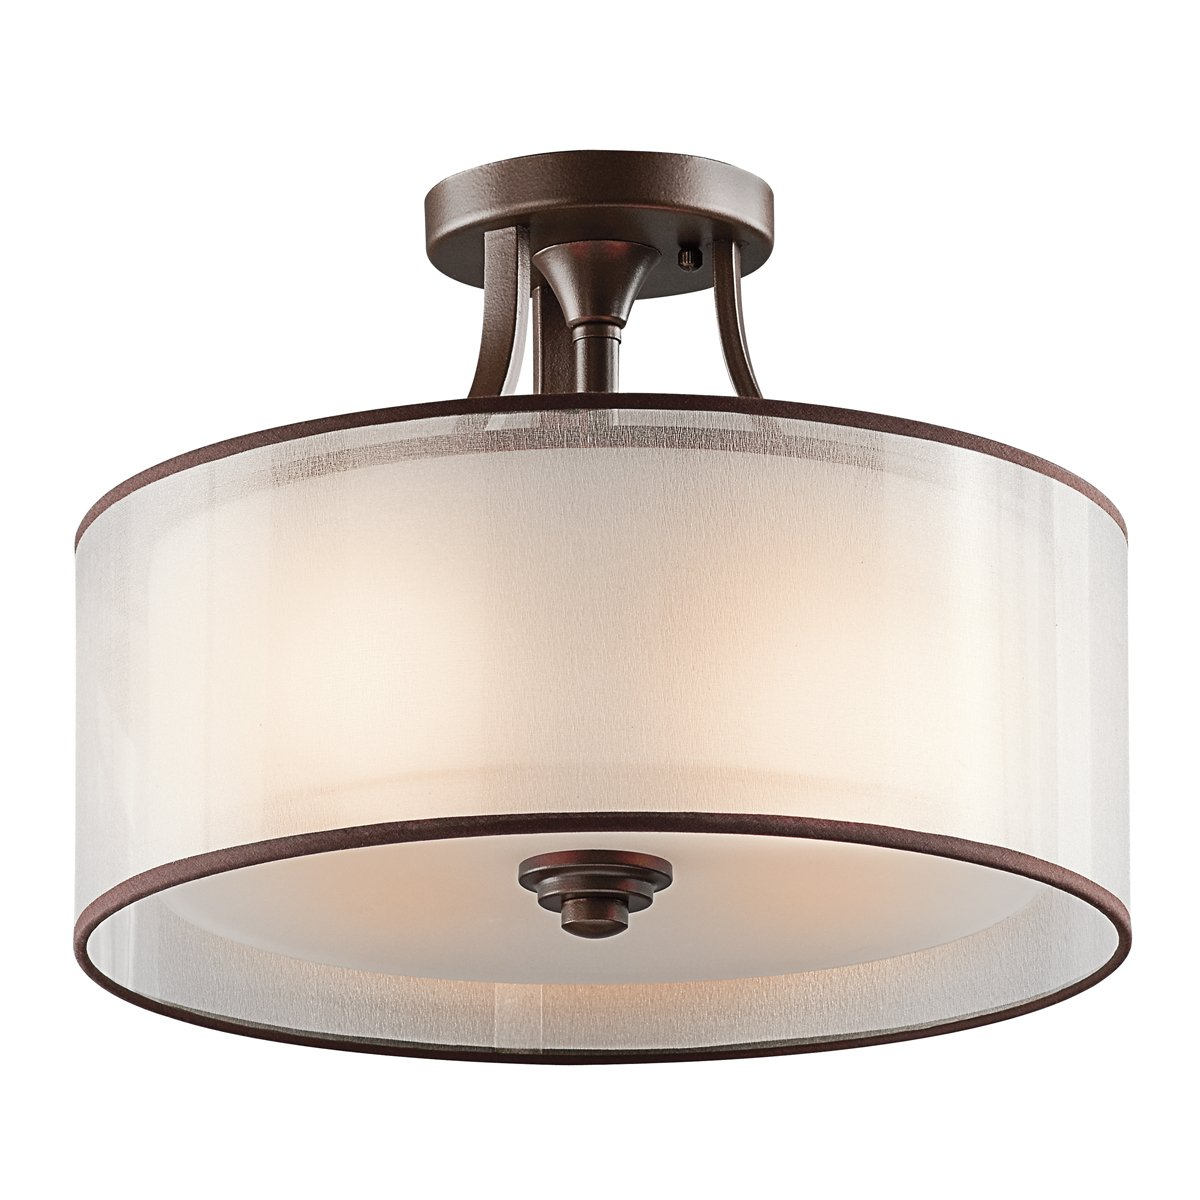 Kichler 42386MIZ Lacey Semi-Flush in Mission Bronze, 3-Light